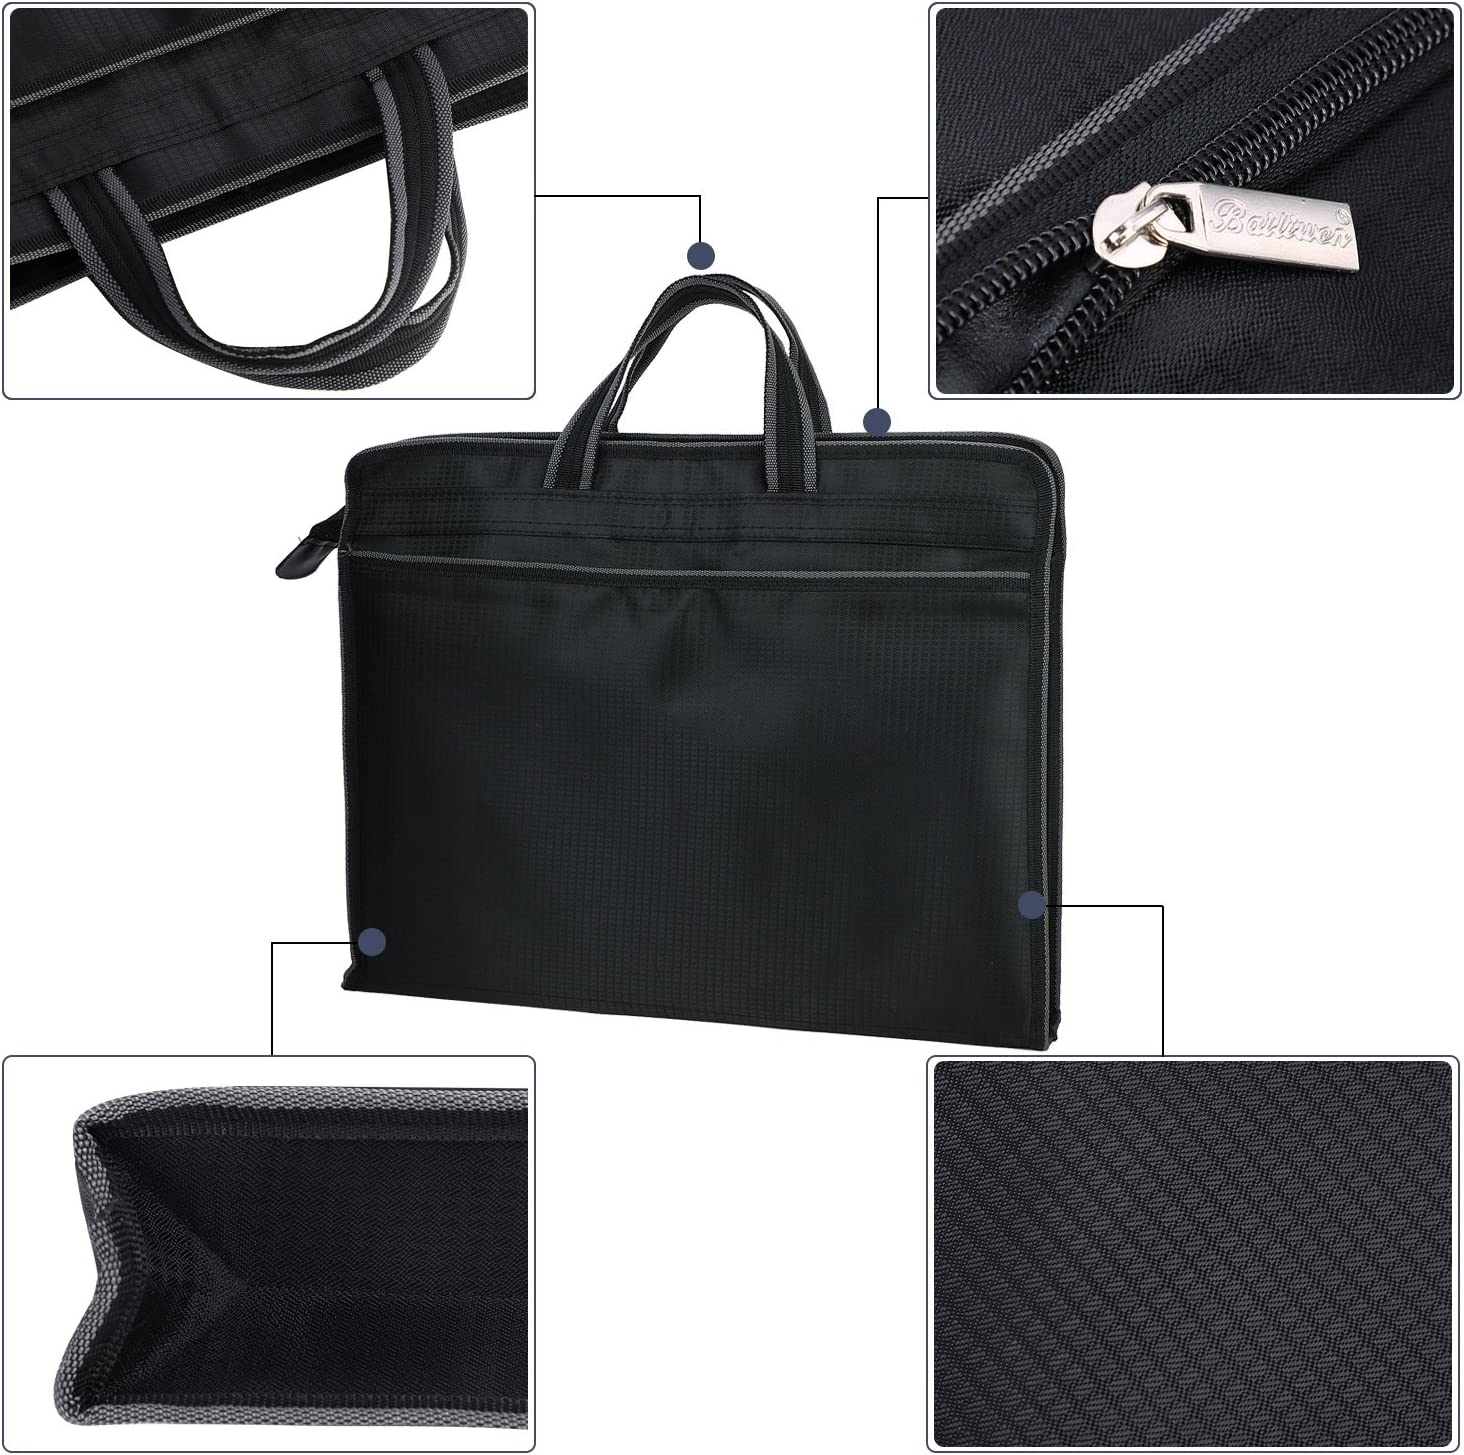 Laptop Case Men Women Oxford Fabric 15.3 inch Laptop Case Business Trip B4 A4 Files Holder Briefcase Messenger Bag for College Students Office Workers Professional Computer Notebook Bag